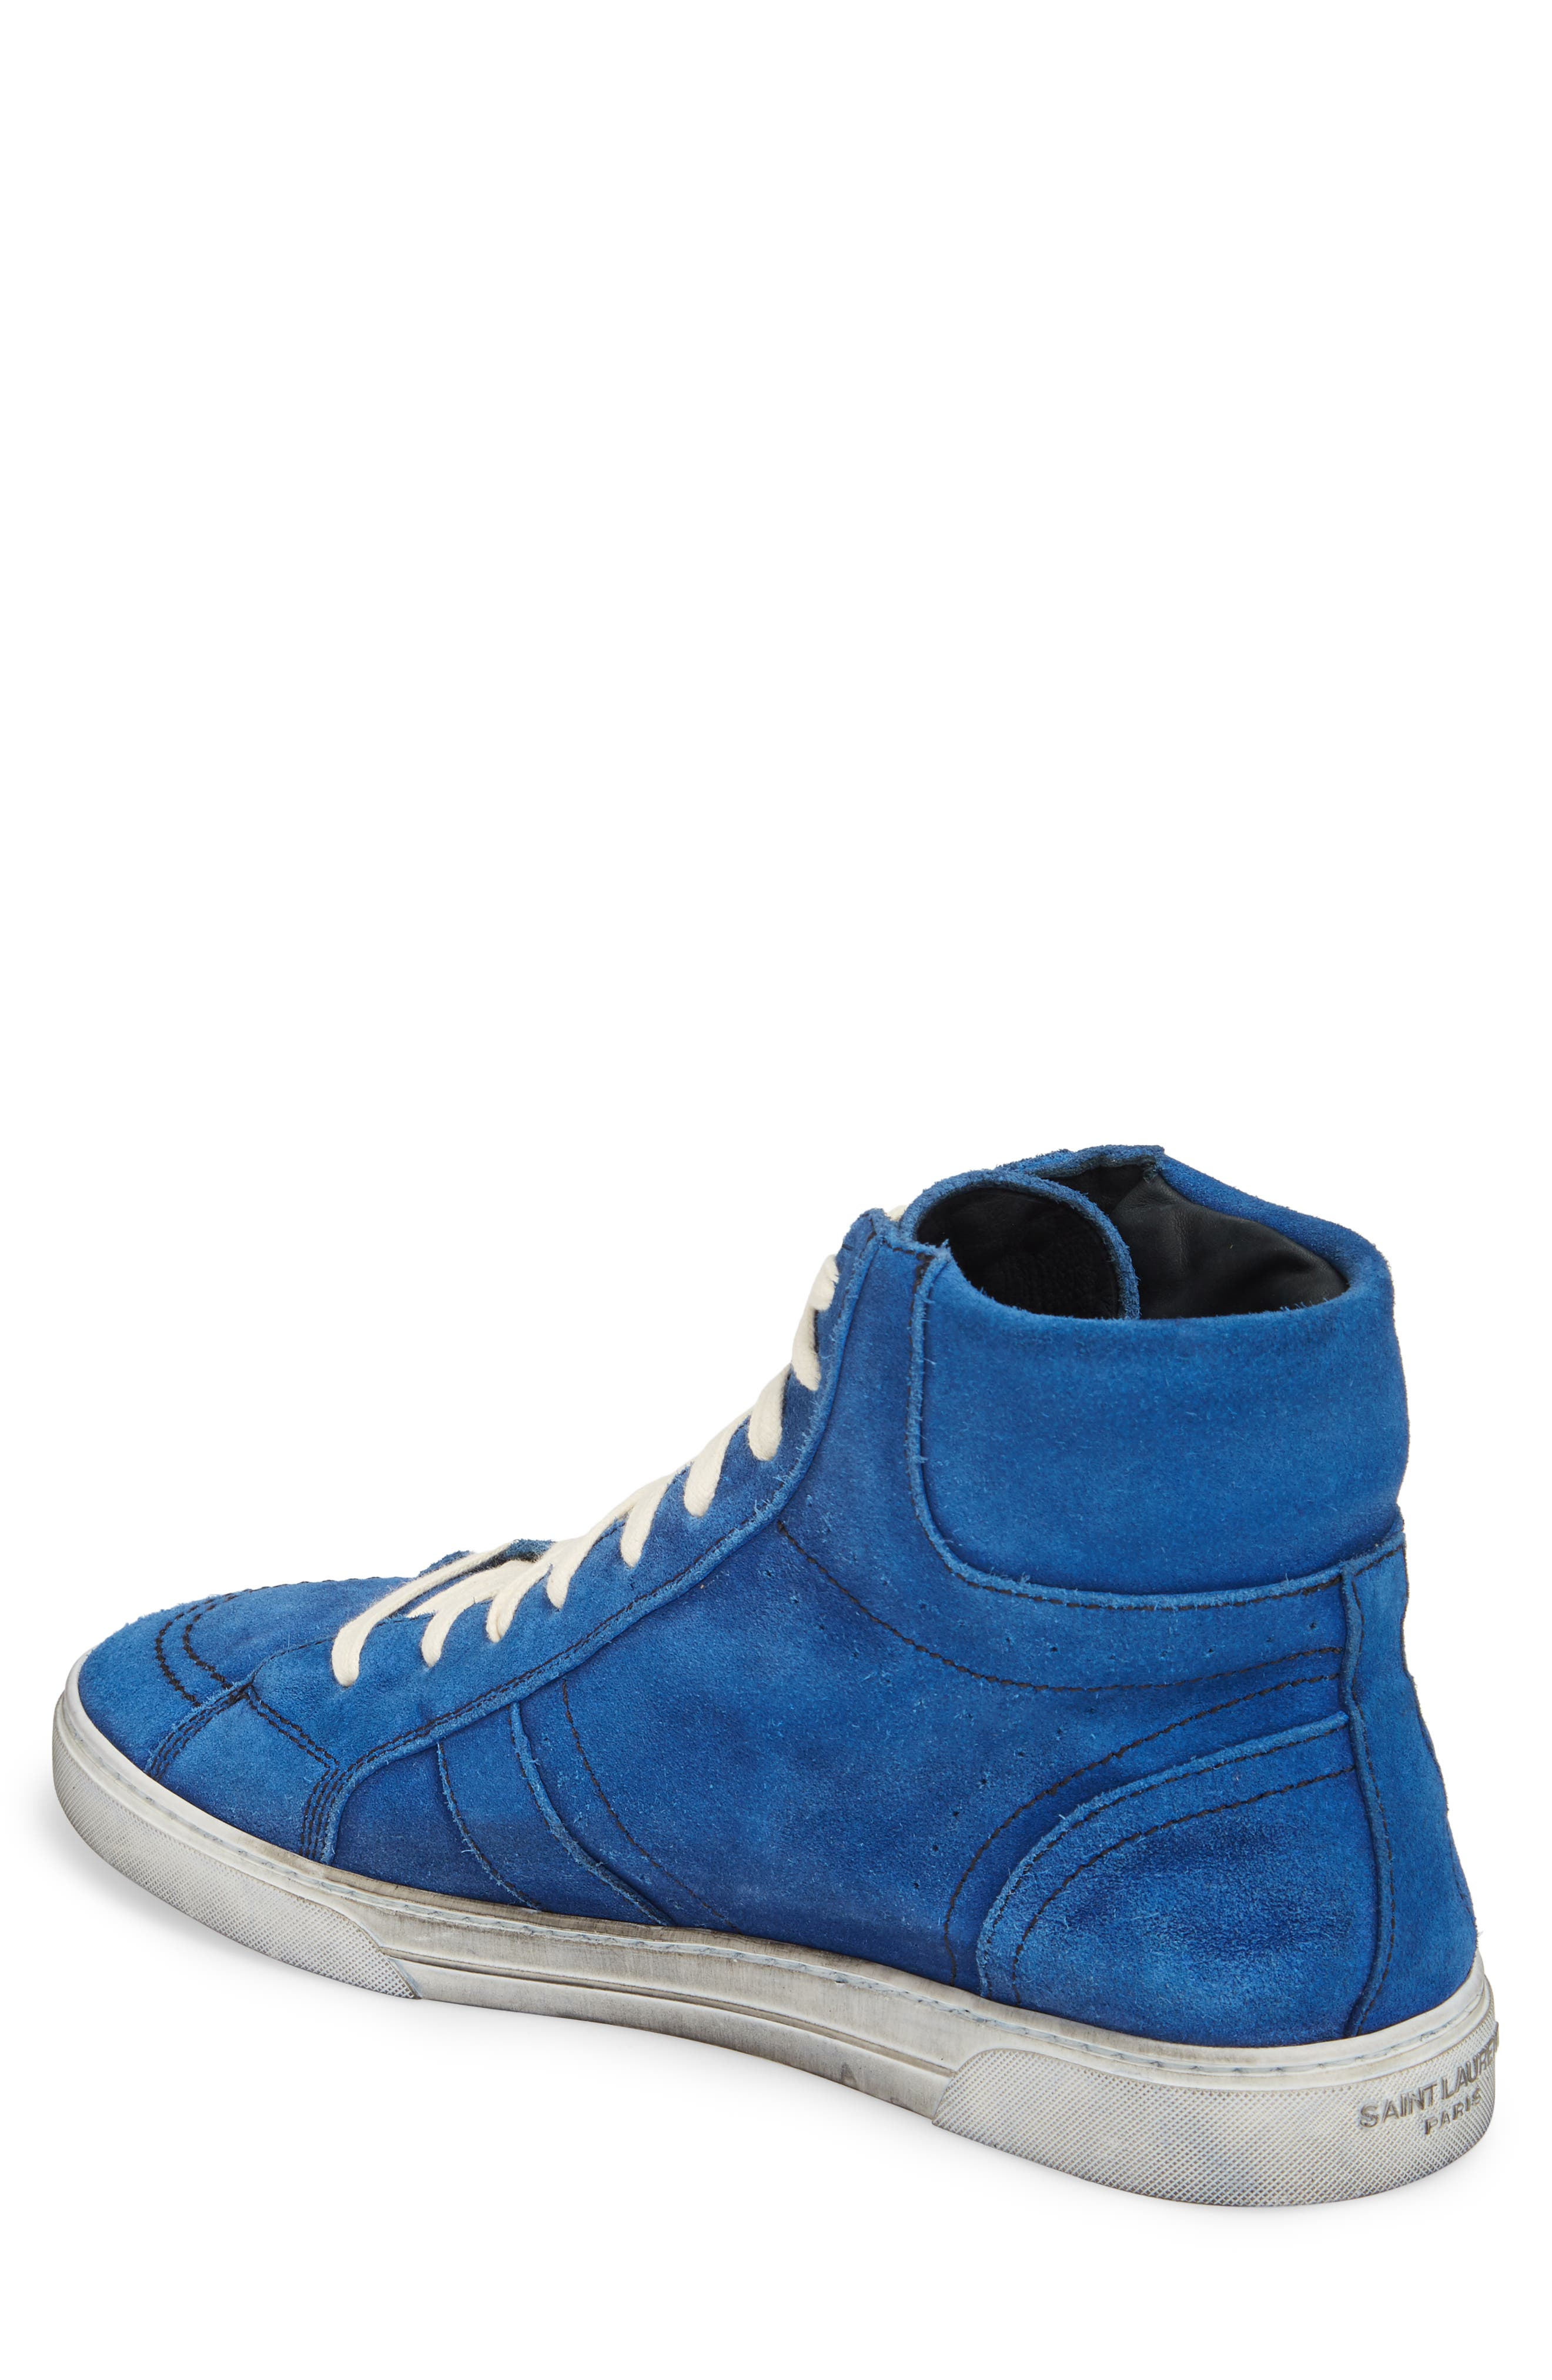 High Top Sneaker,                             Alternate thumbnail 2, color,                             Blue Suede